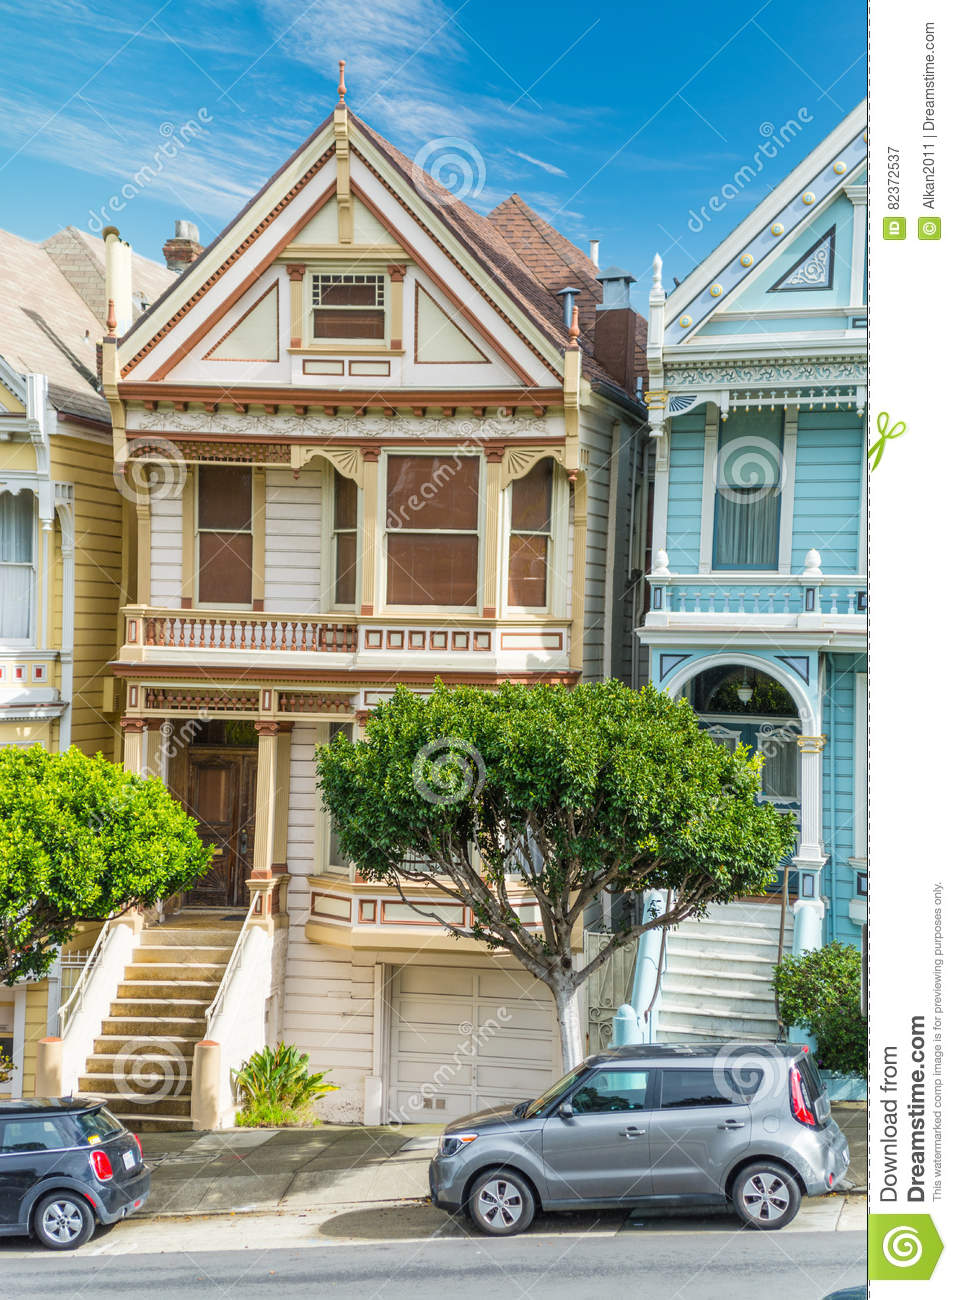 Painted Lady In Alamo Square Editorial Photography Image Of Alamo Residential 82372537